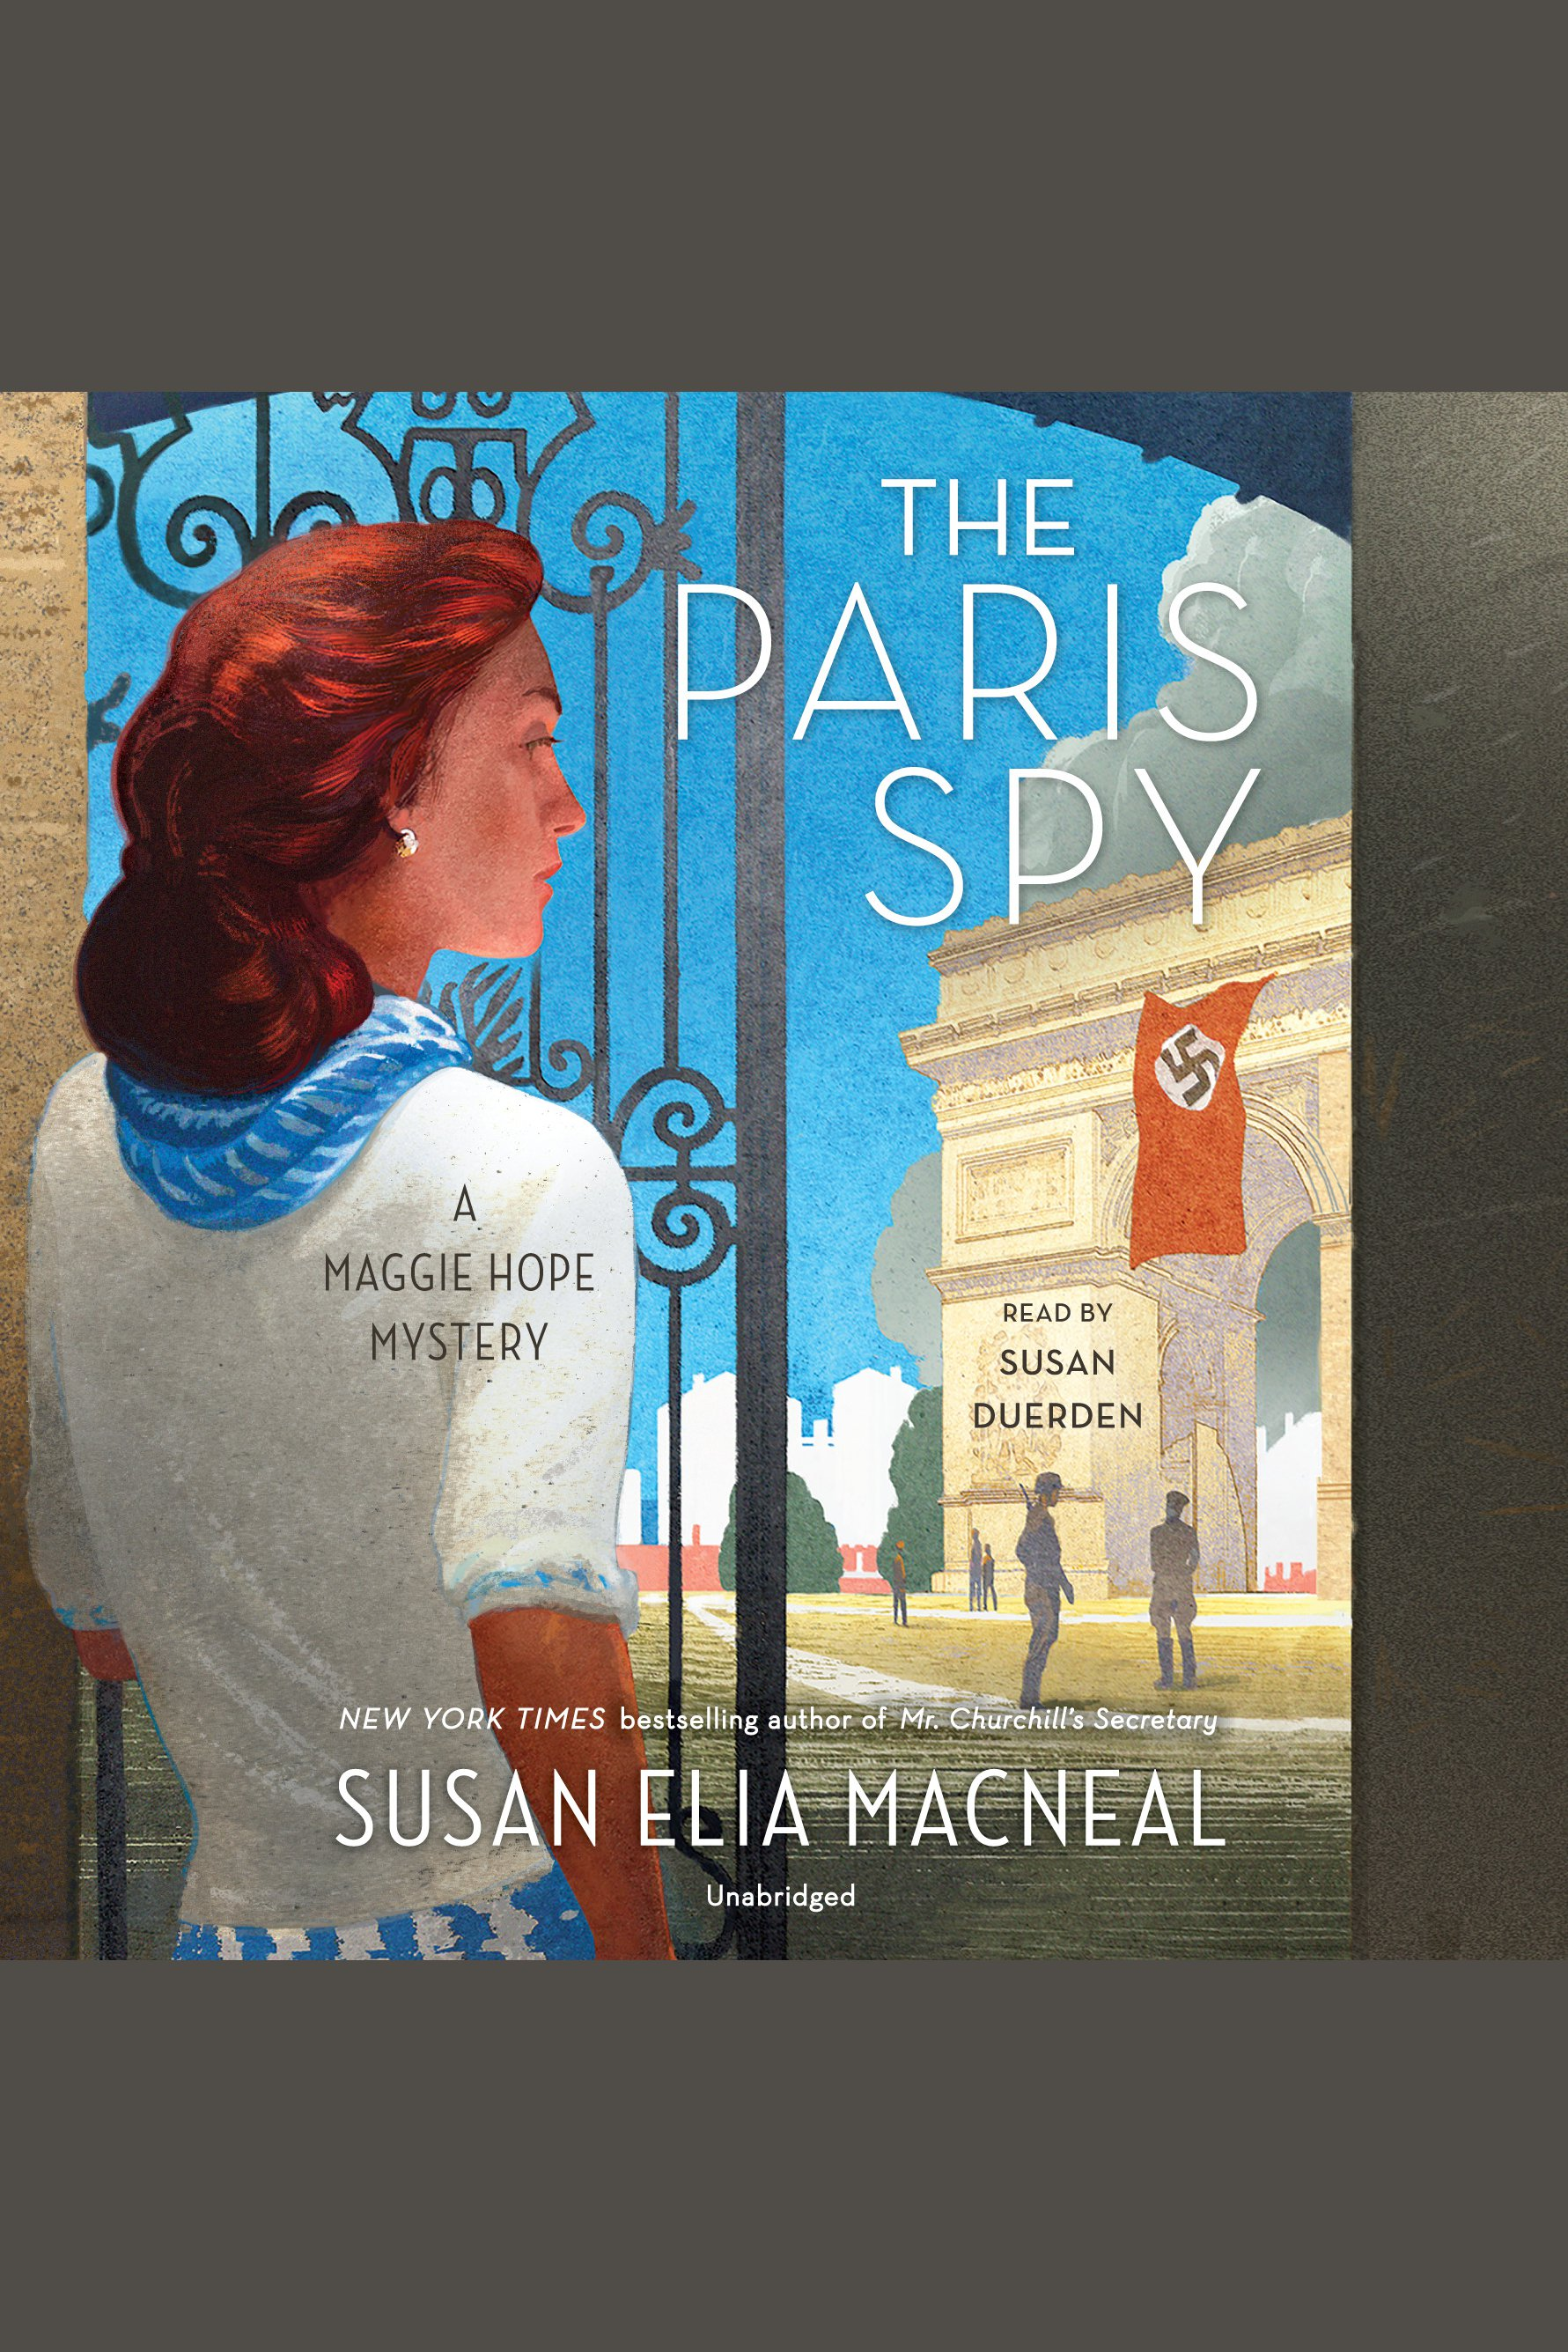 The Paris spy a Maggie Hope mystery cover image